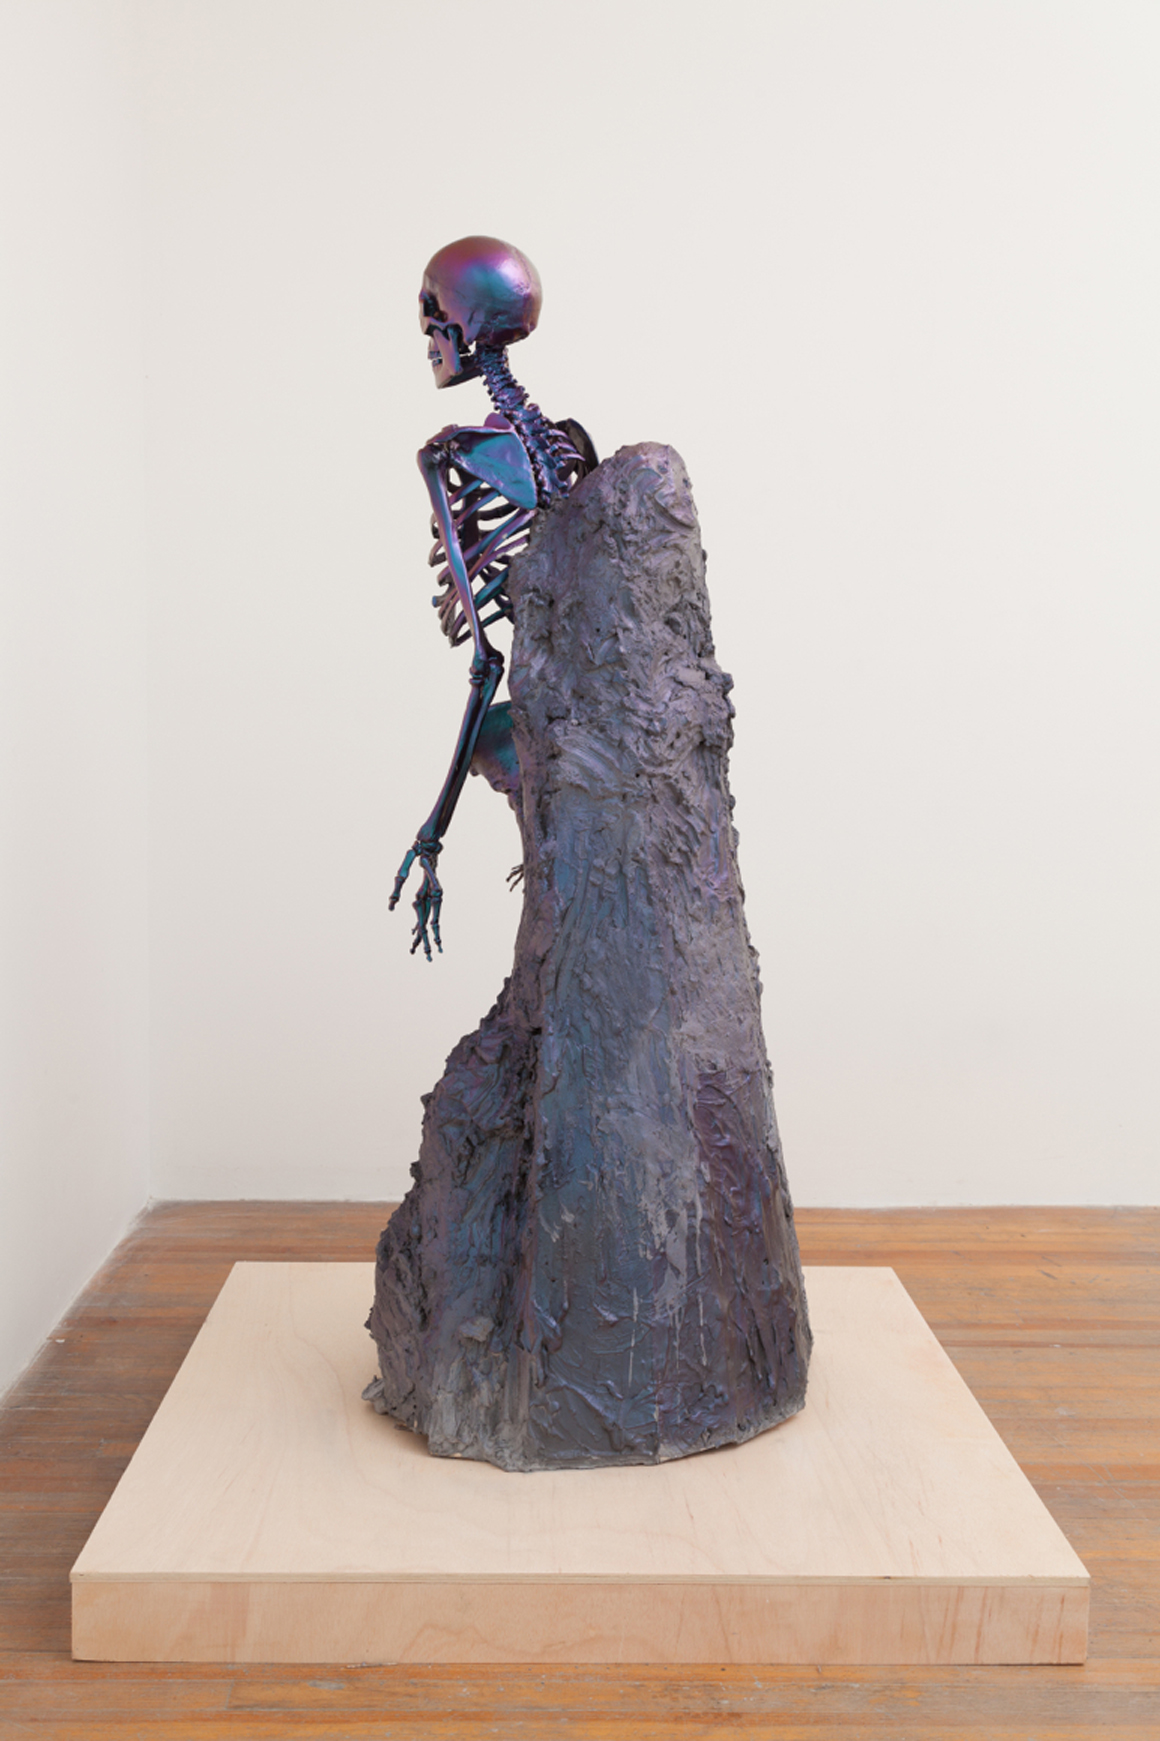 """<p><span class=""""name"""">Dmitri Obergfell</span><br><em>Our Lady of Anatomy</em><span class='media'>plaster, graphite, interference paint, polycarbonate,</span>65 x 24 x 26 in (165.1 x 61 x 66 cm)<br>2014<br><a class='inquire' href='mailto:info@gildargallery.com?subject=Artwork Inquiry DOBE0007&body=I am interested in finding out more about Our Lady of Anatomy by Dmitri Obergfell'>Inquire</a></p>"""